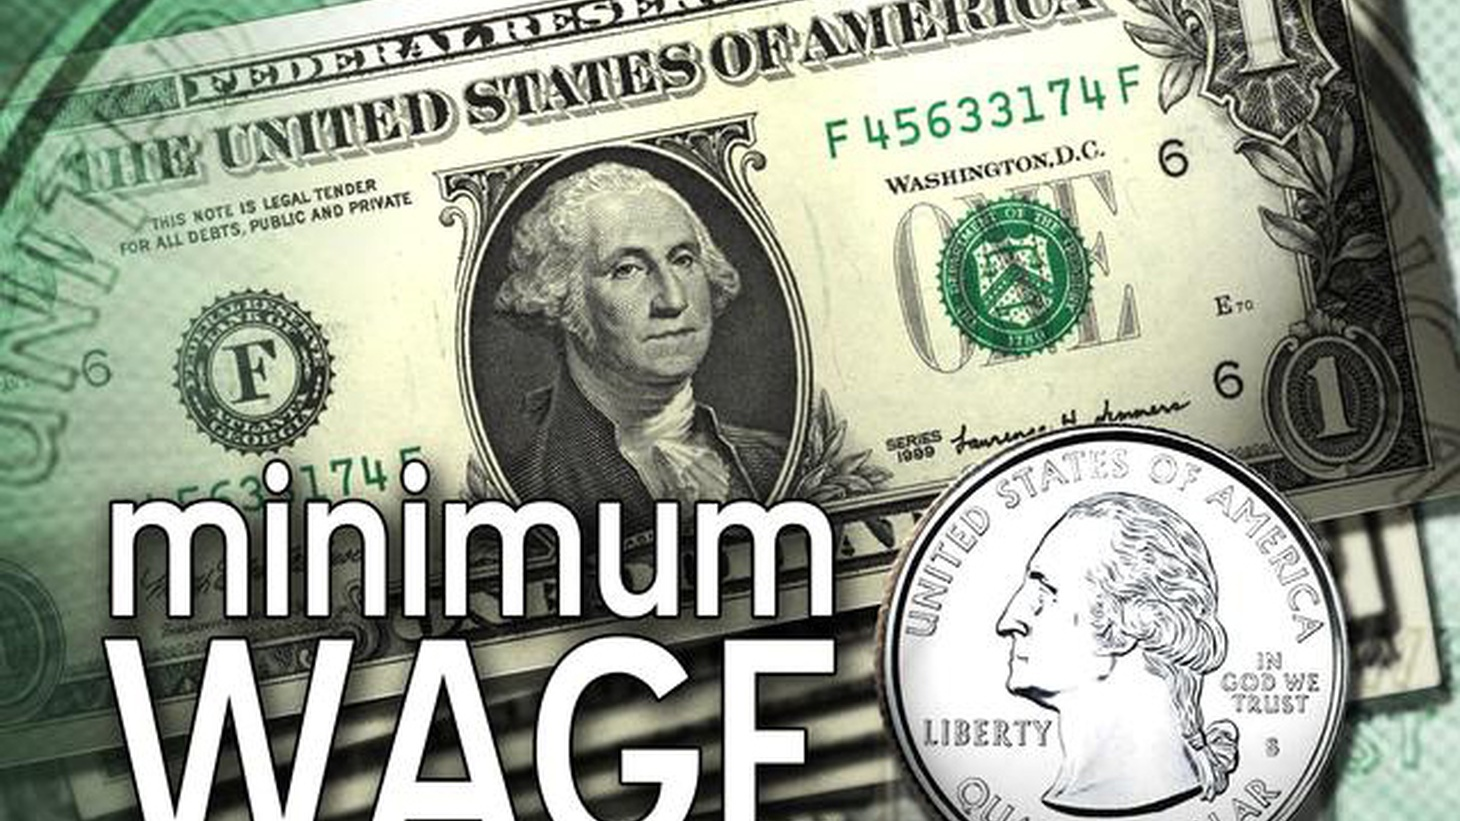 Today the minimum wage in California went from $8 to $9 - the first increase in 5 years. Should LA follow progressive bastions like San Francisco and Seattle in pushing an even higher wage? Or would that break the bank?